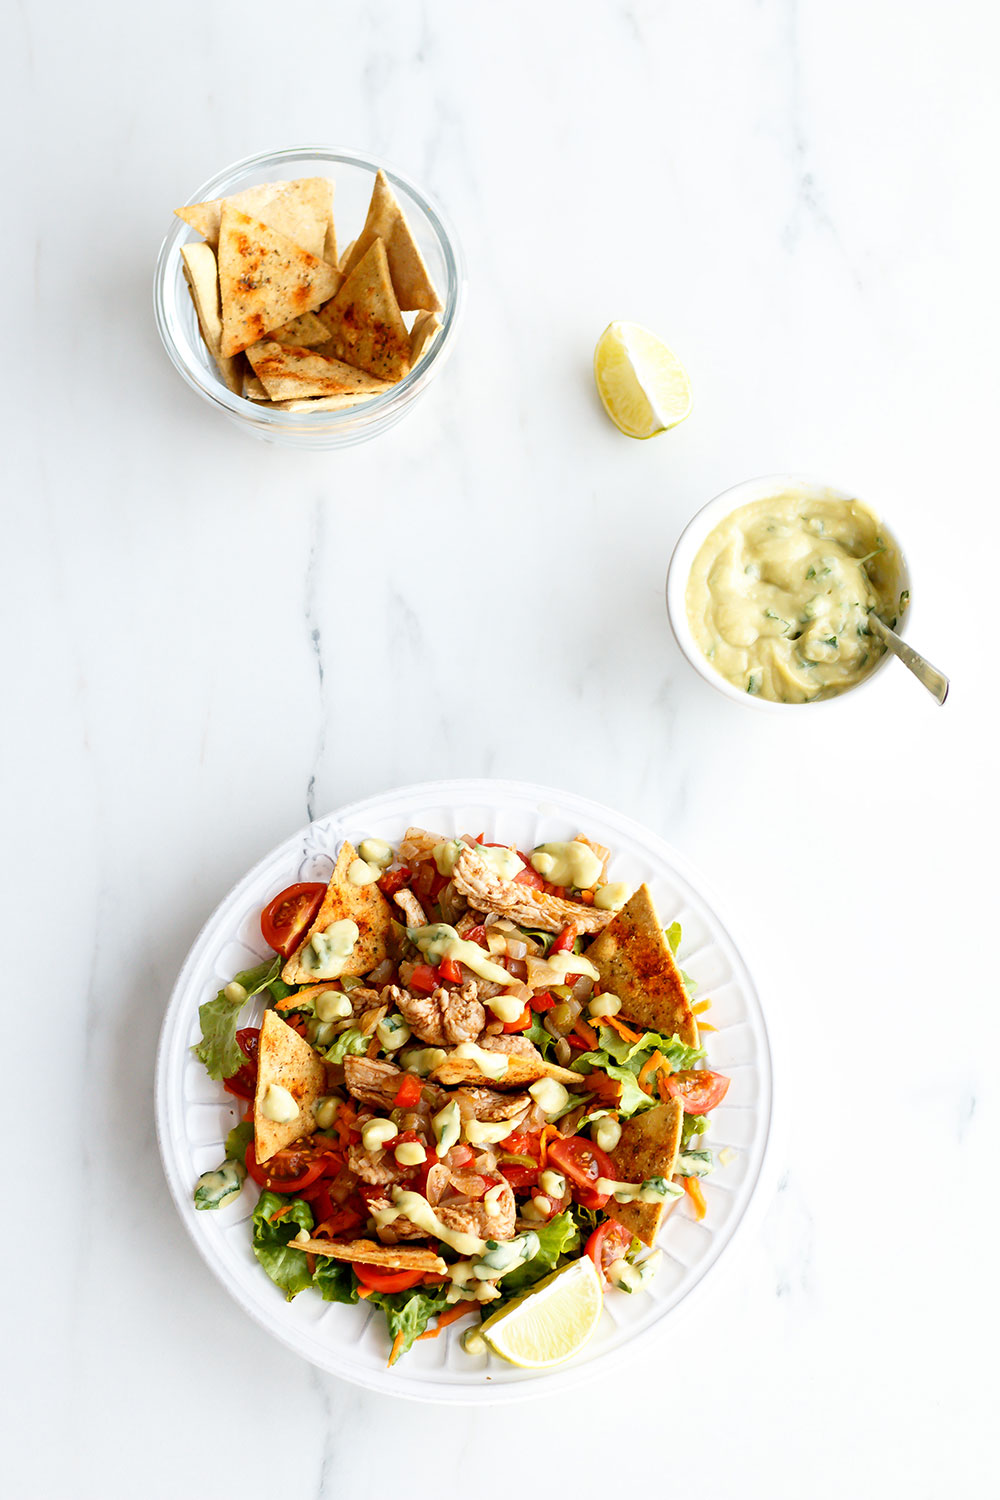 Chickpea Nachos Recipe: A balanced, yummy and fulfilling meal that's 100% homemade! https://www.spotebi.com/recipes/chickpea-nachos/